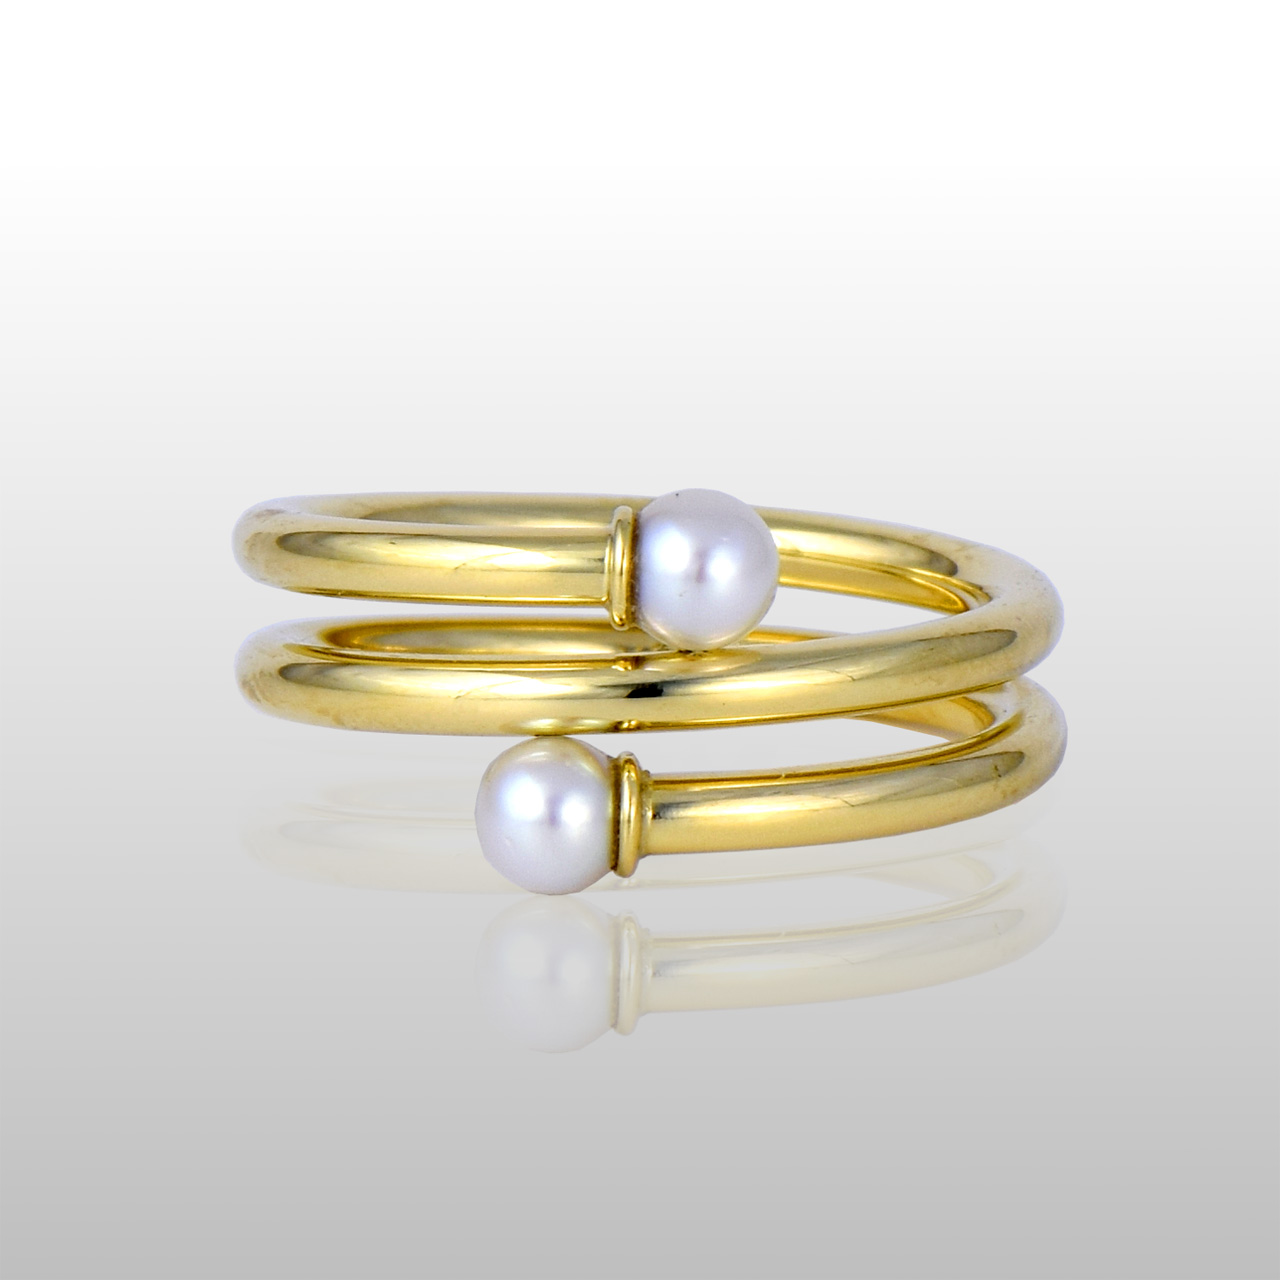 Gold spiral ring with with two pearls on each end.